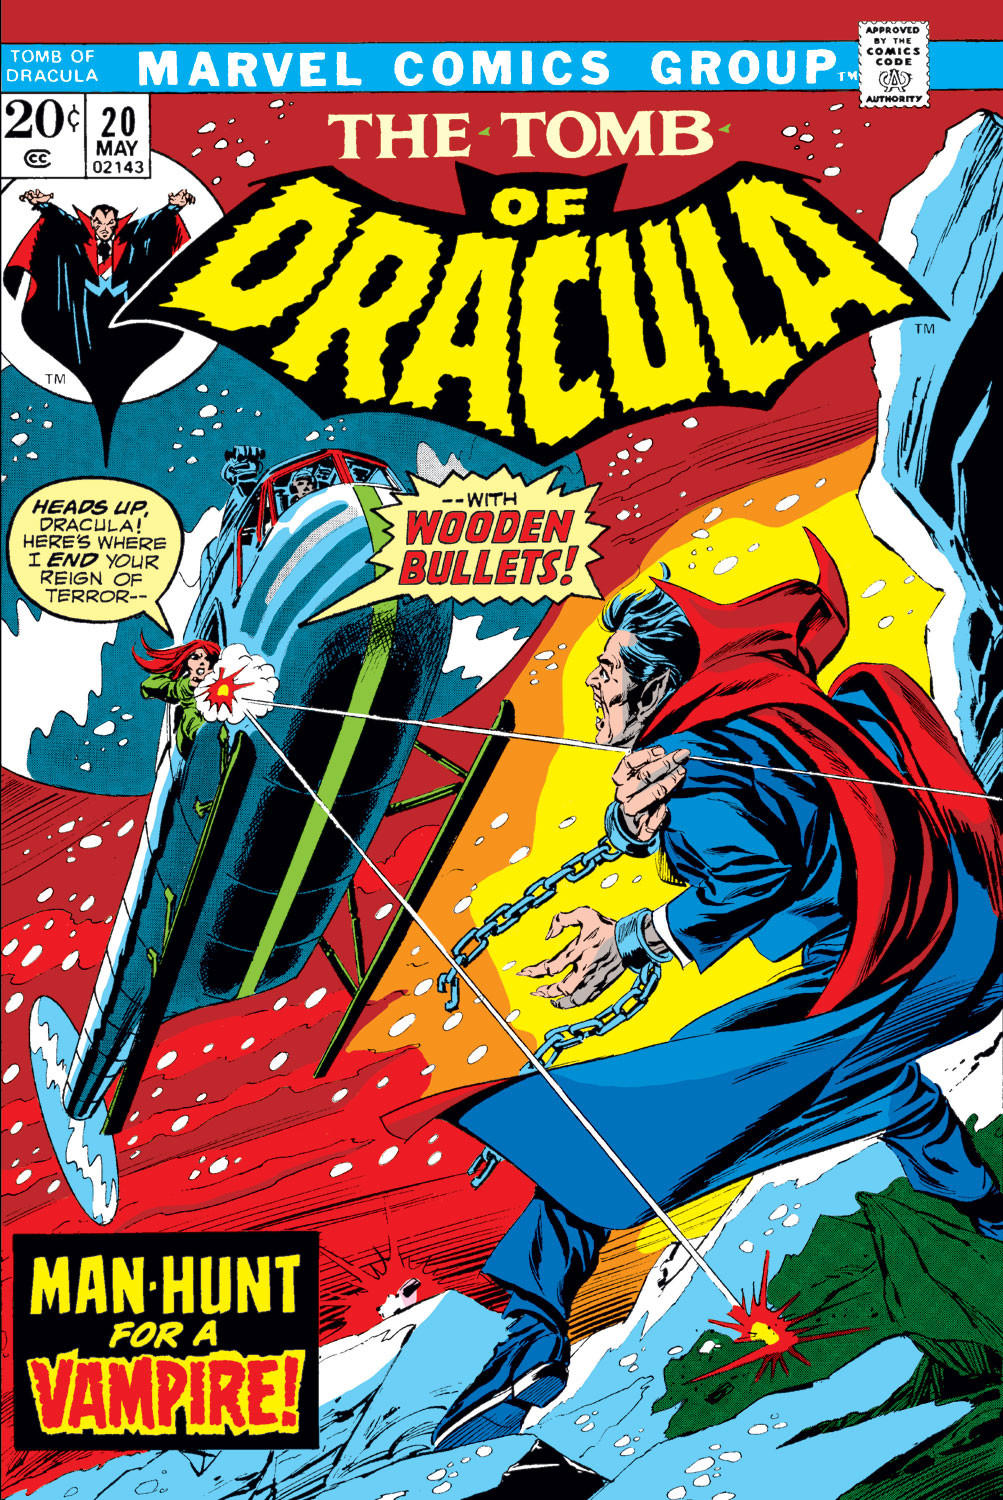 Tomb of Dracula Vol 1 20